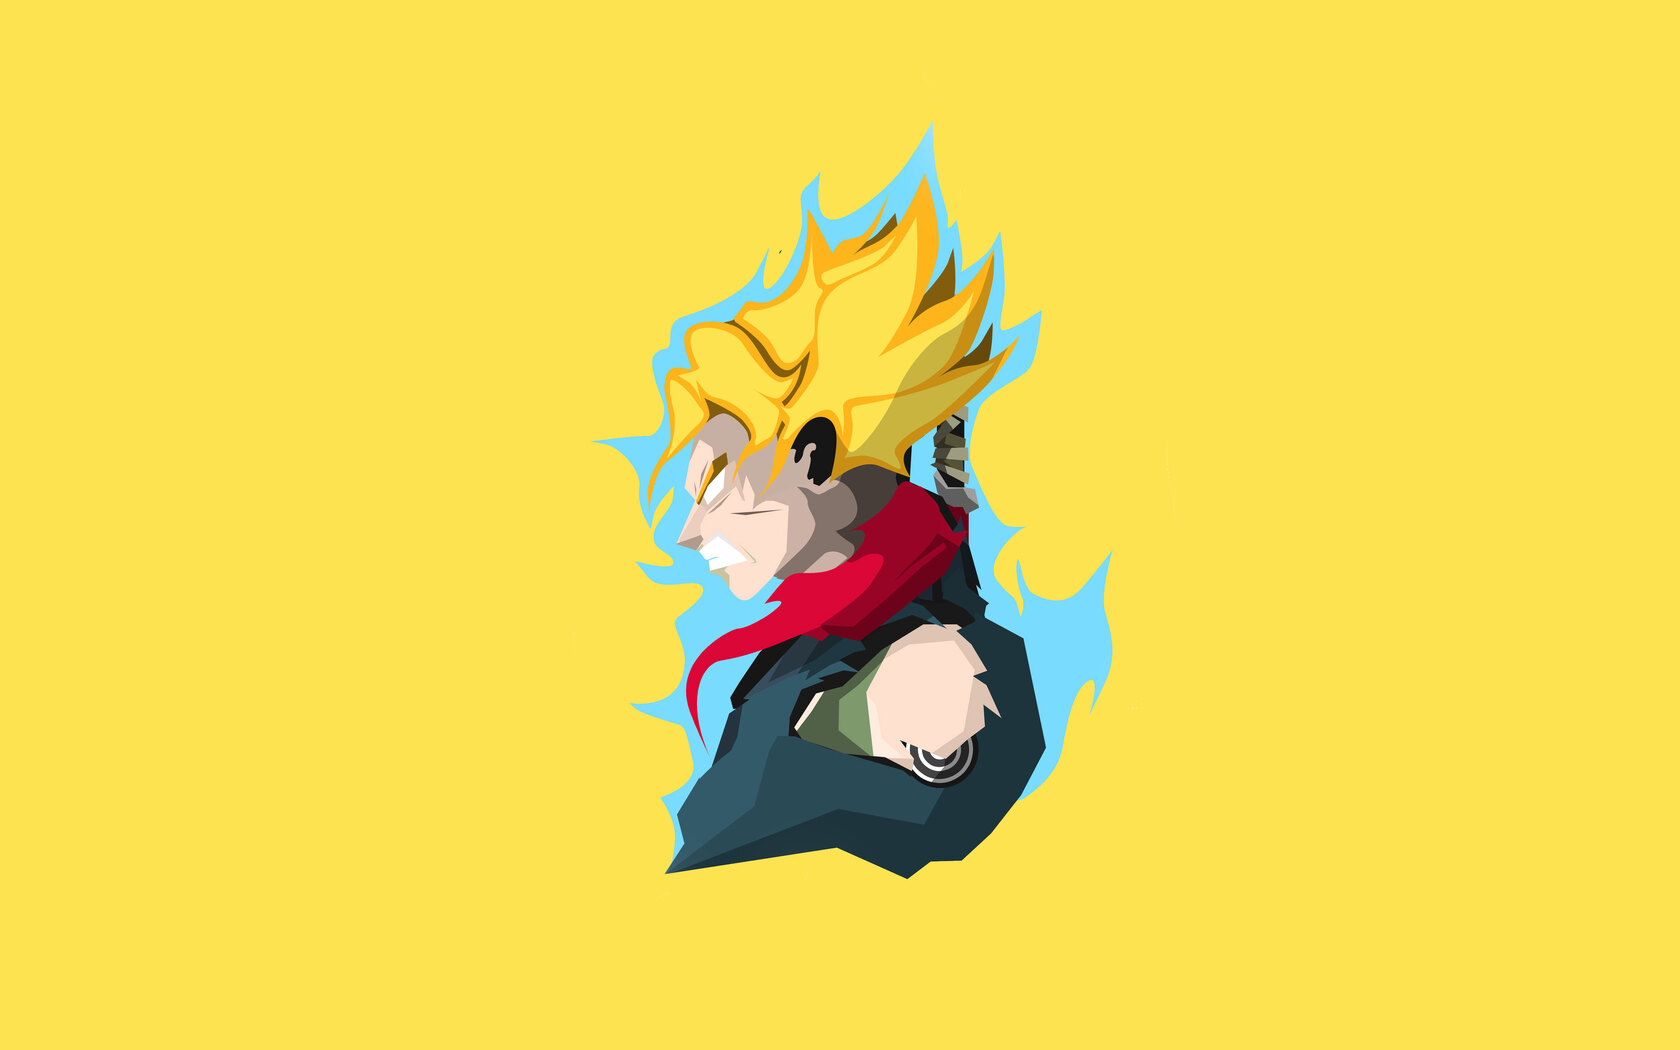 1680x1050 Son Goku Dragon Ball Super 4k Minimalism 1680x1050